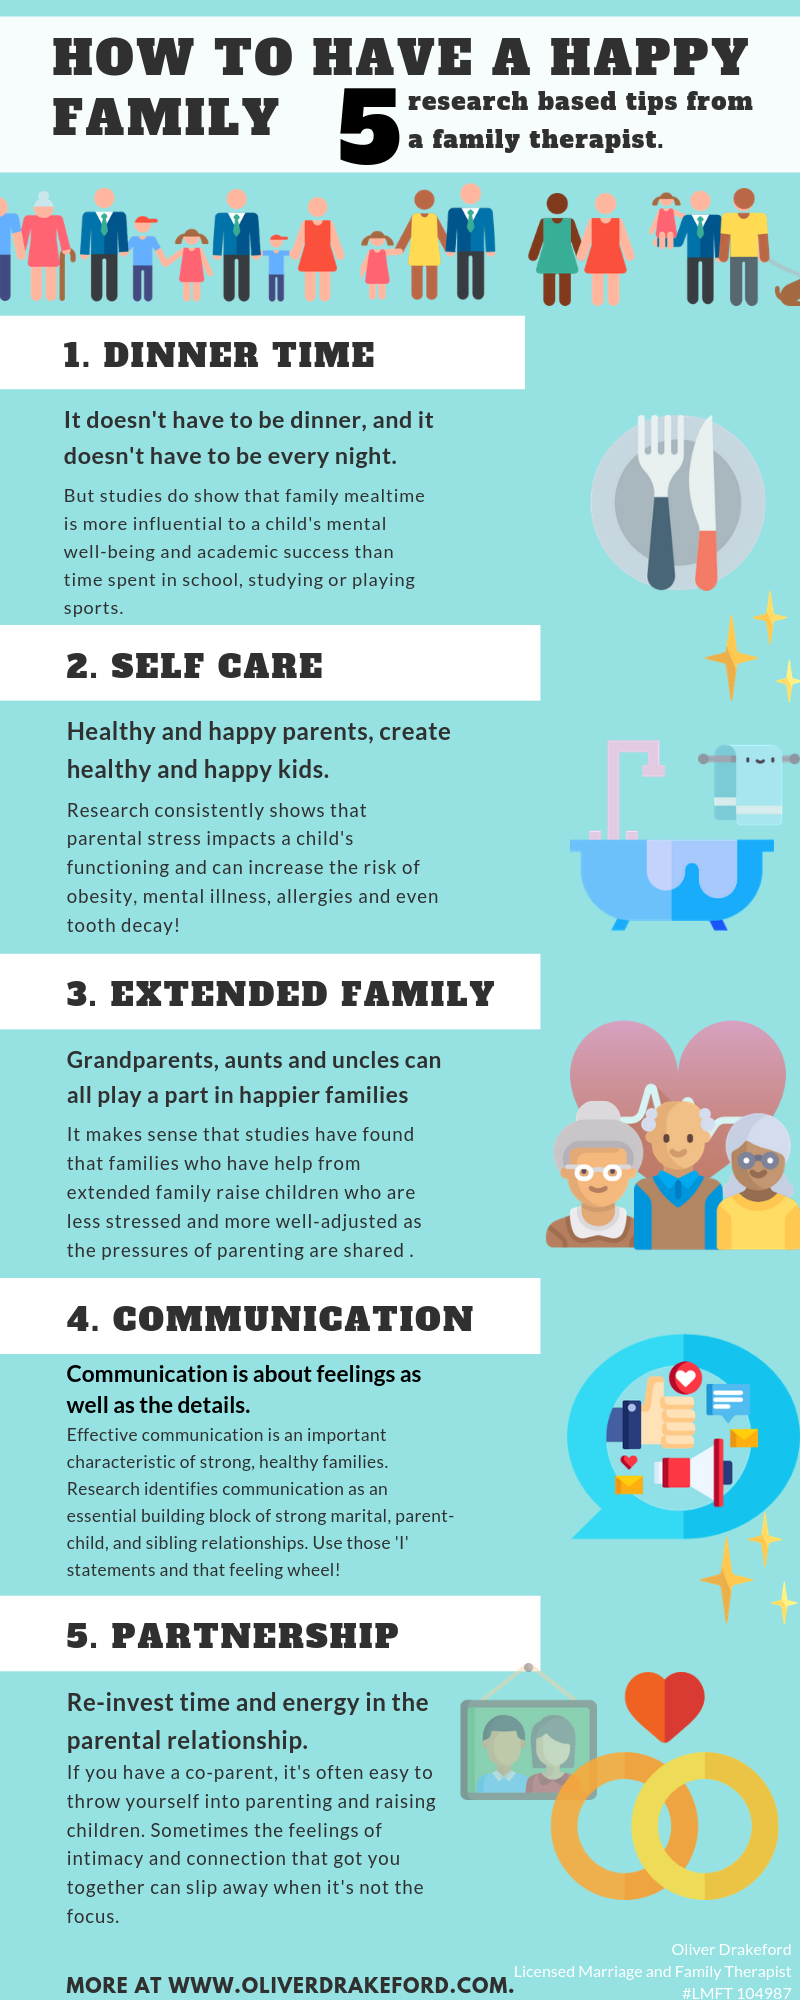 family therapist los angeles, family therapy, west hollywood, family therapy in los angeles, adolescent therapist, teen thearpist